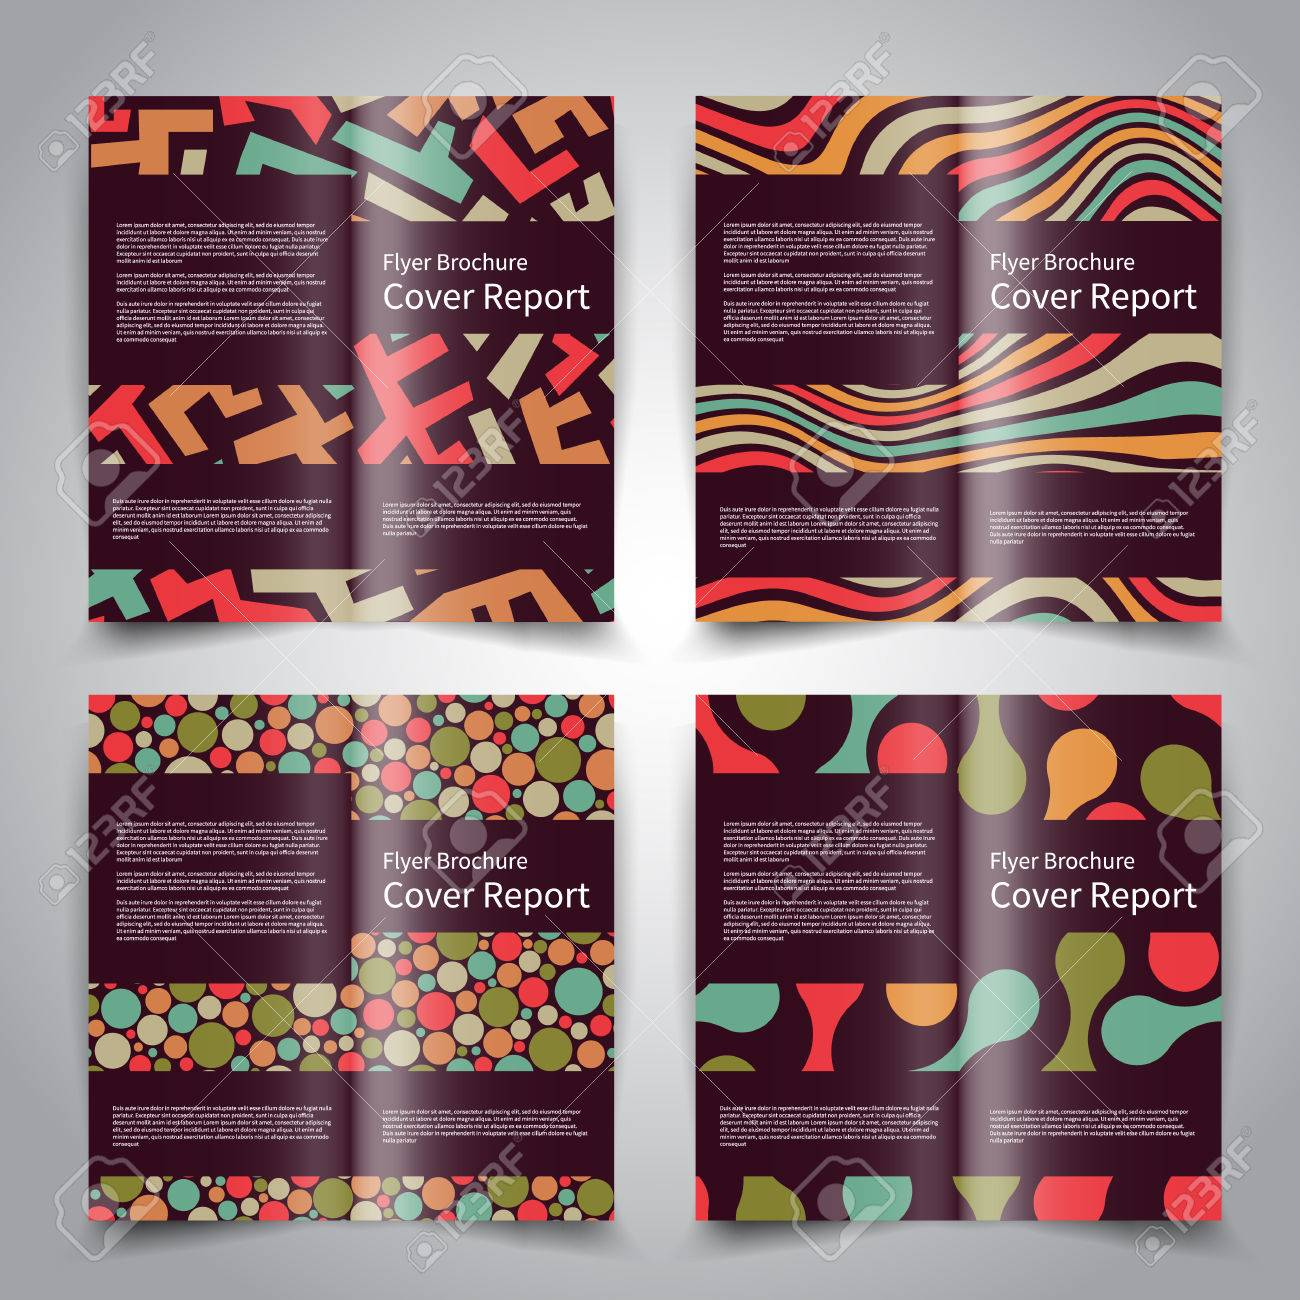 brochure design templates set with abstract geometric ornament